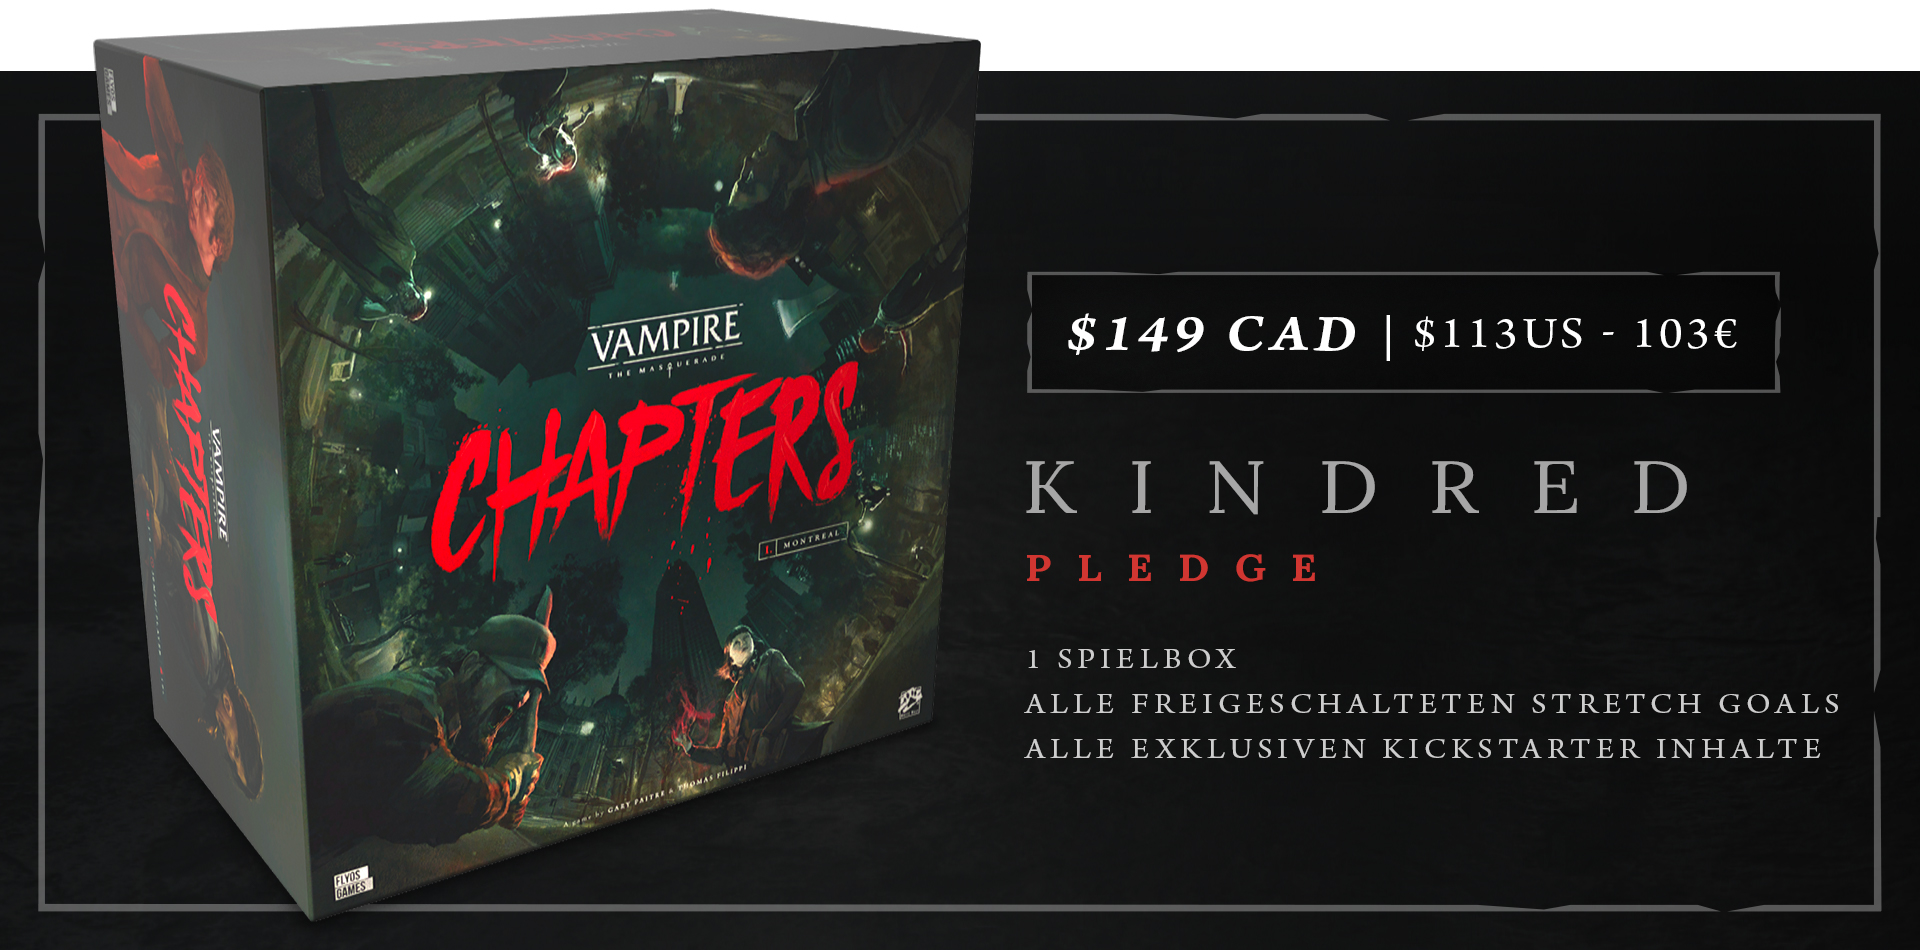 KINDRED-Pledge-1